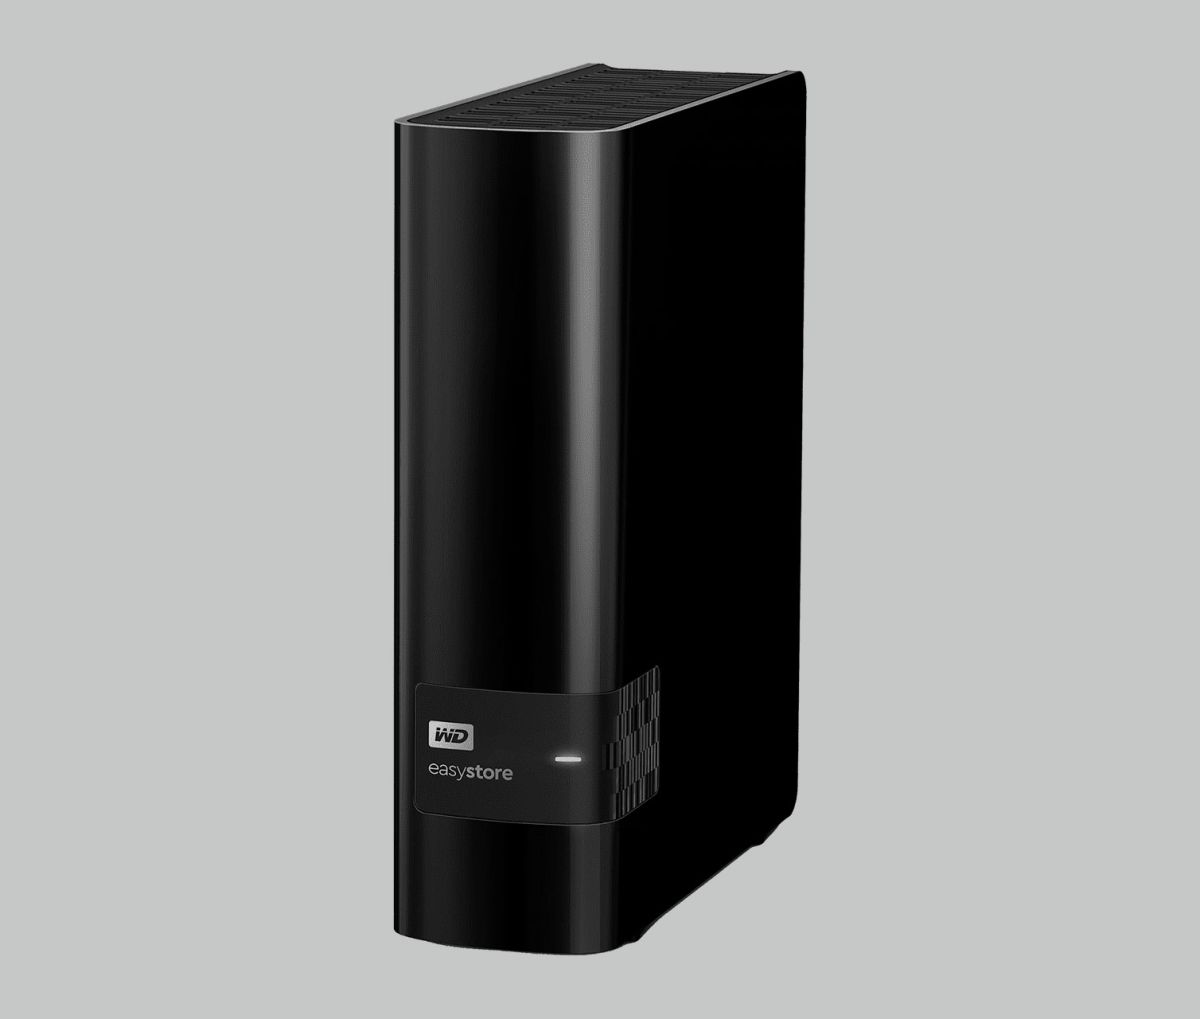 WD Deal Offers $100 Off 12TB of External Storage